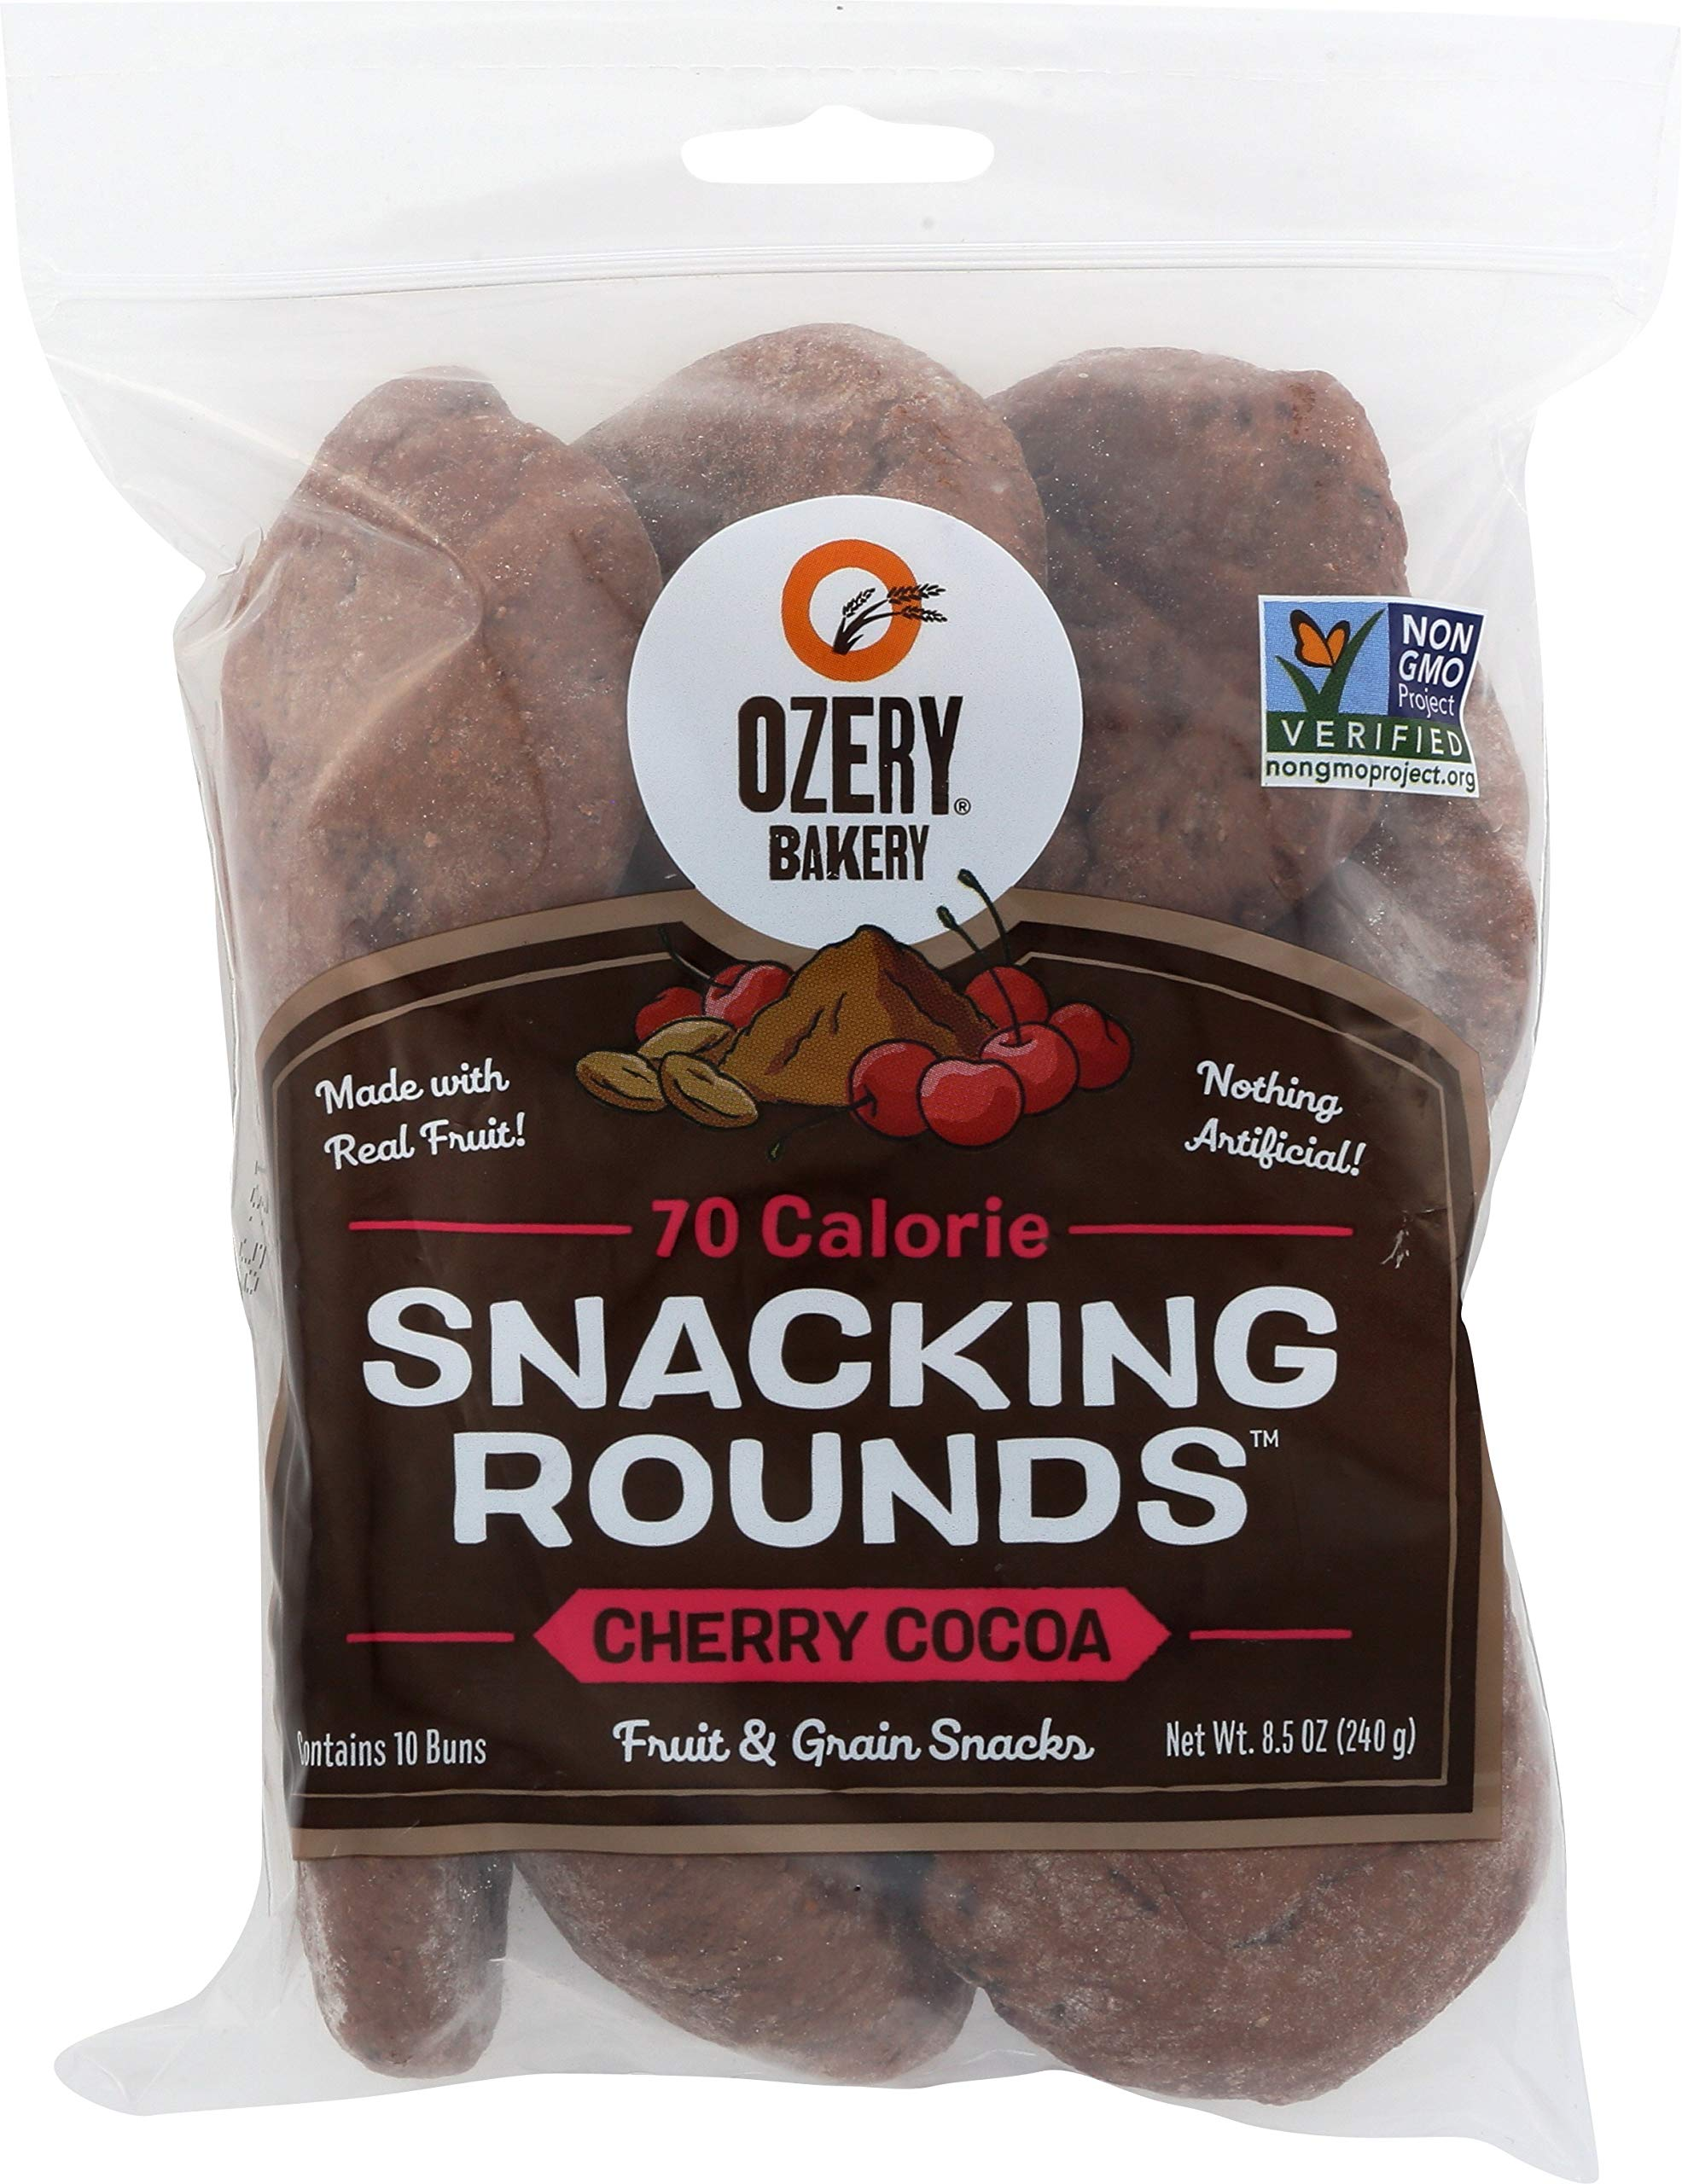 Ozery Bakery Fruit and Grain Snacks, Cherry Cocoa Snacking Rounds, Bite Sized 70 Cal Snack, 8.4 Ounce (pack Of 6)